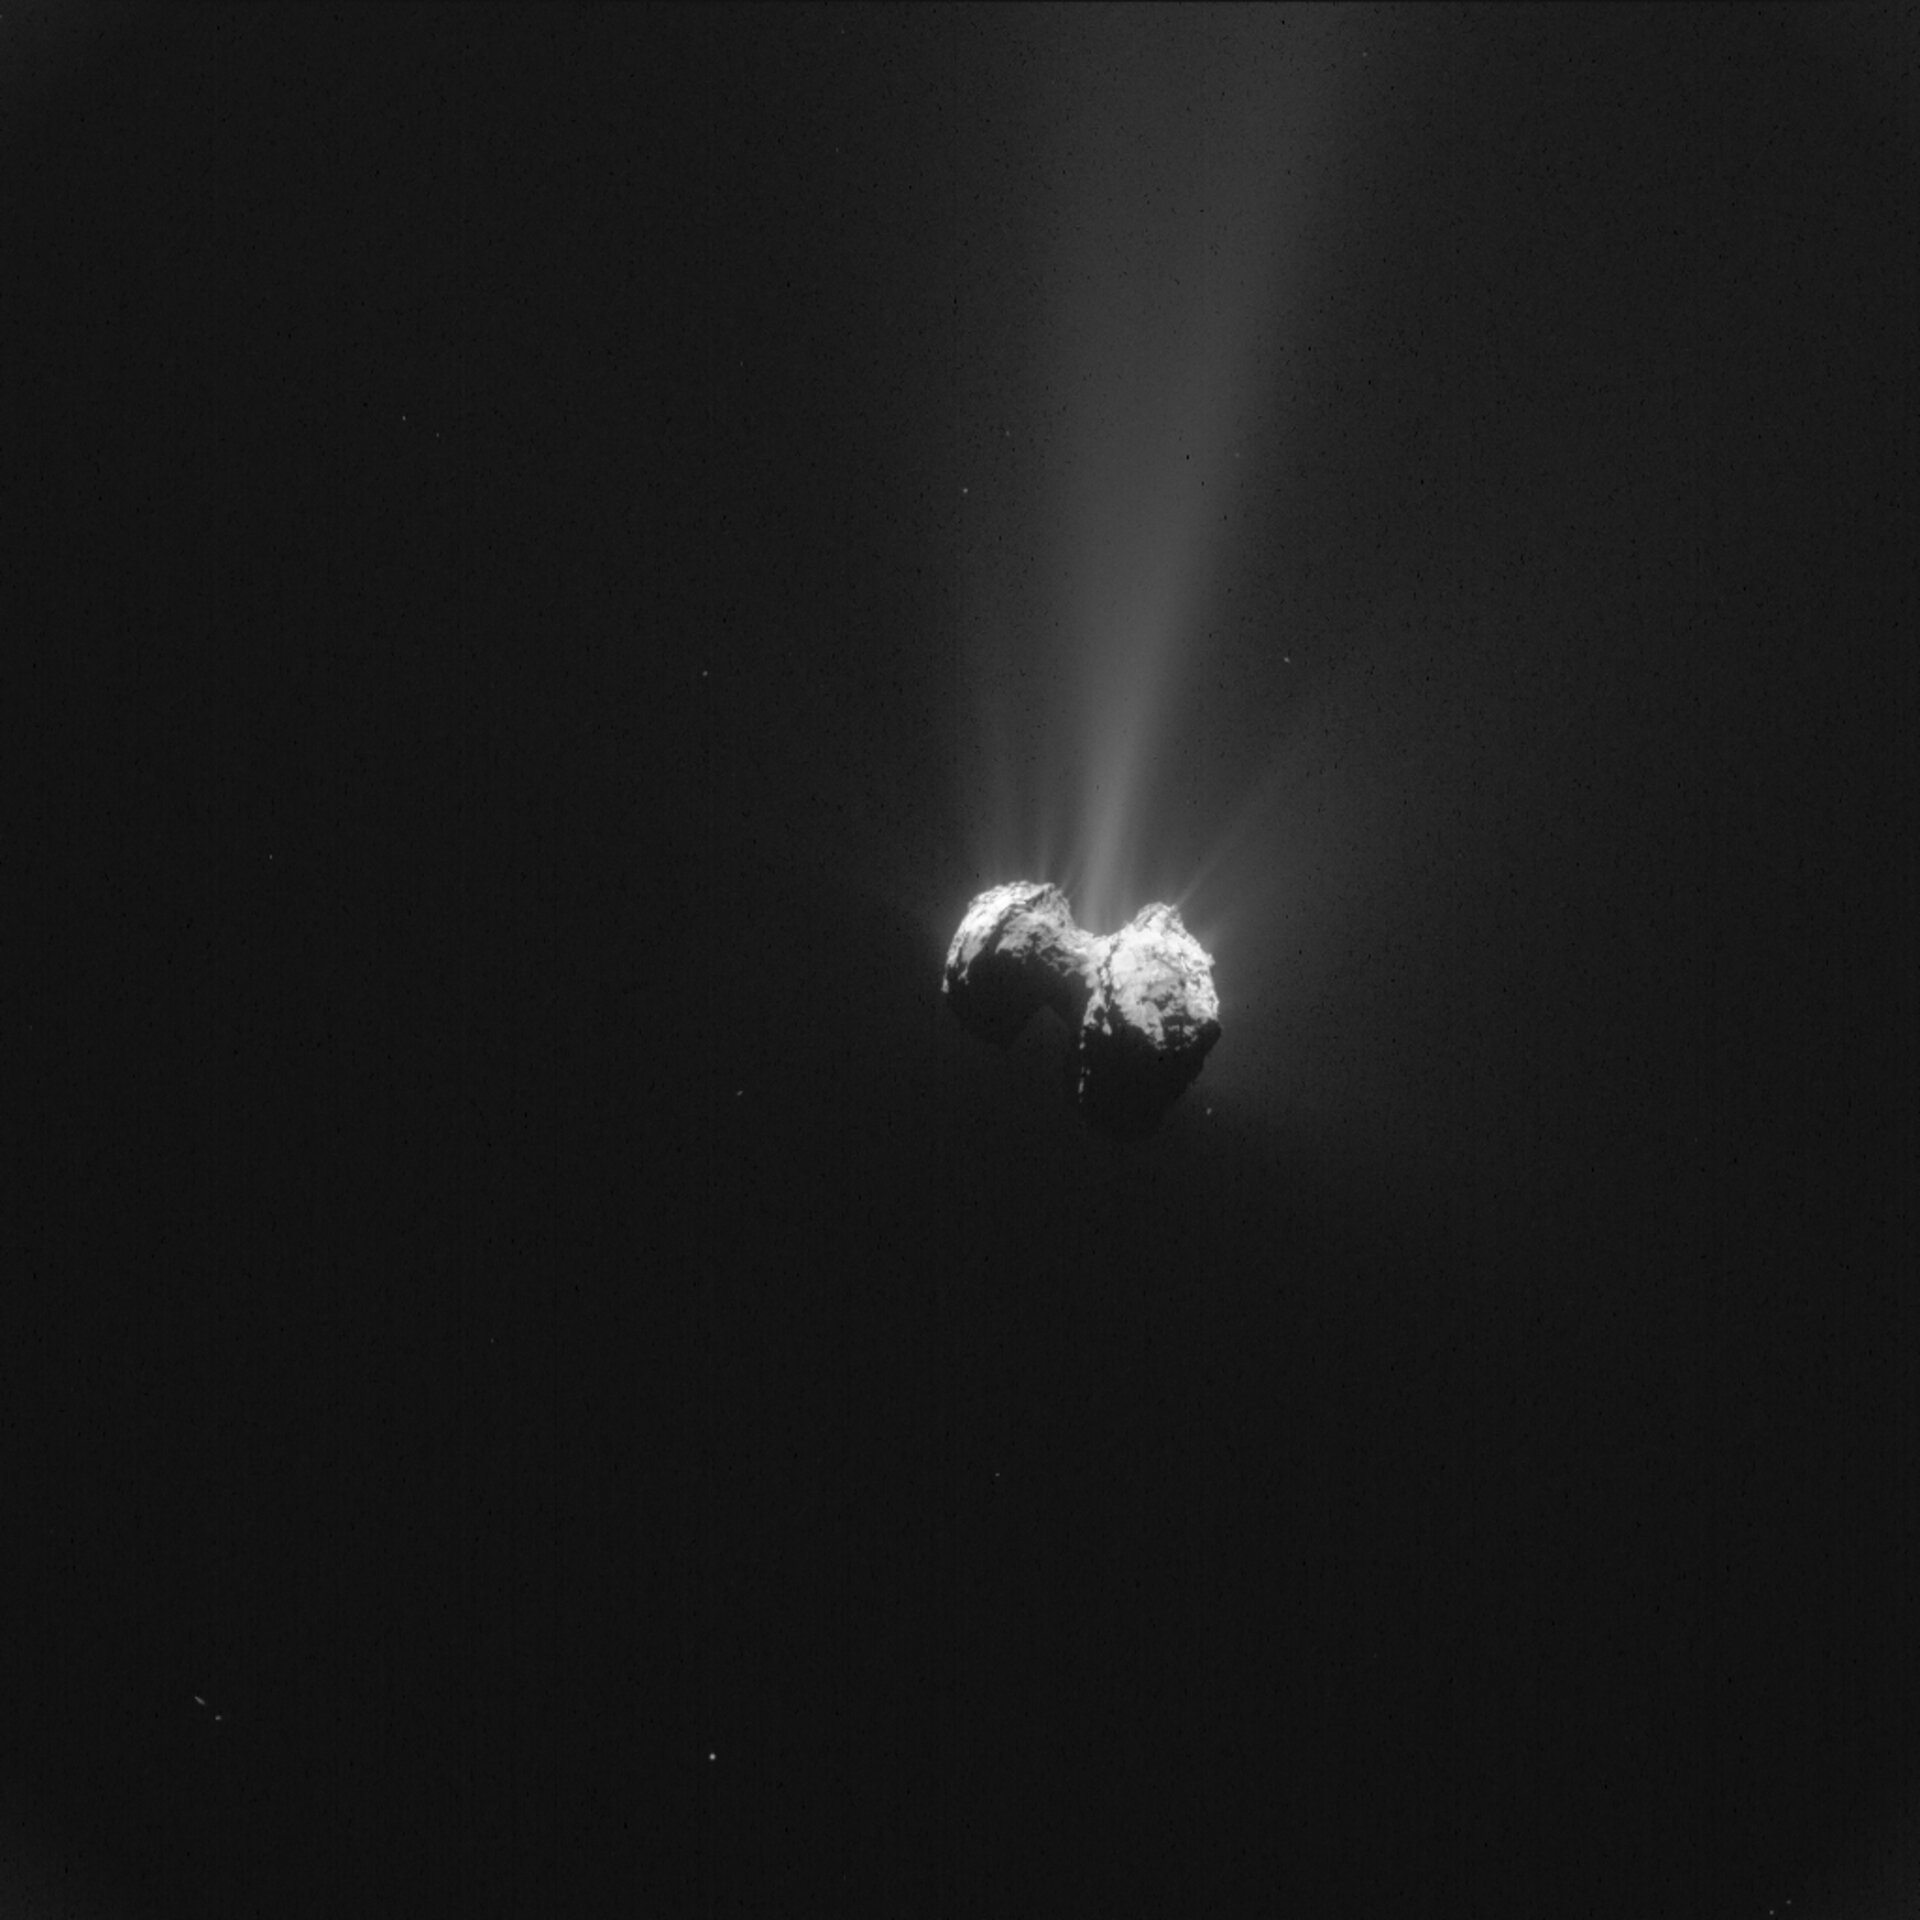 Comet nucleus seen by Rosetta on 21 September